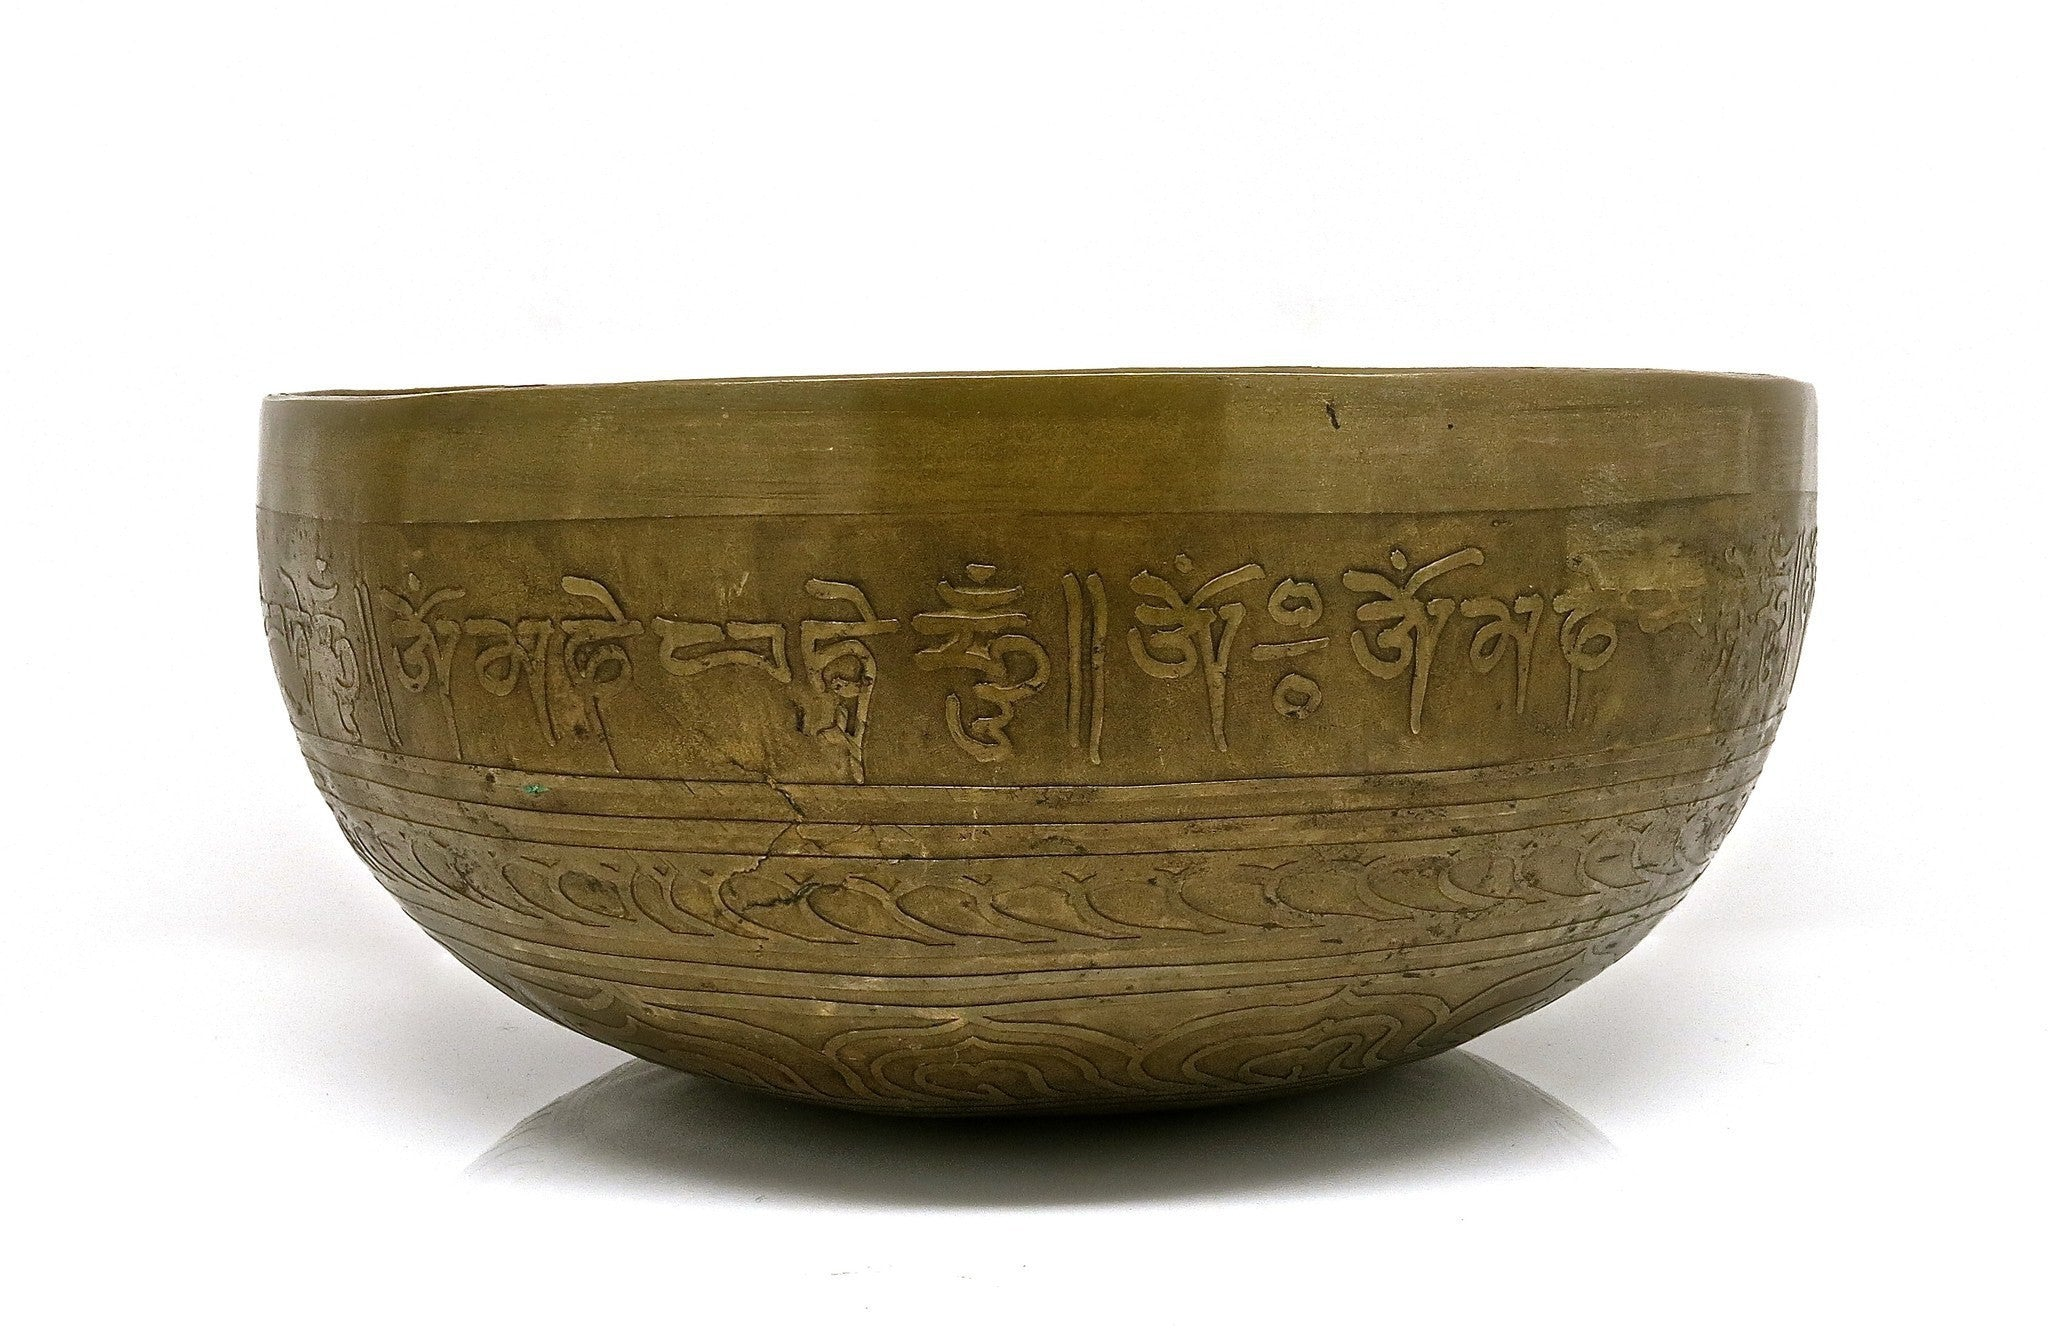 Golden Mantra Singing Bowl - Golden Mantra Singing Bowl 8.5""